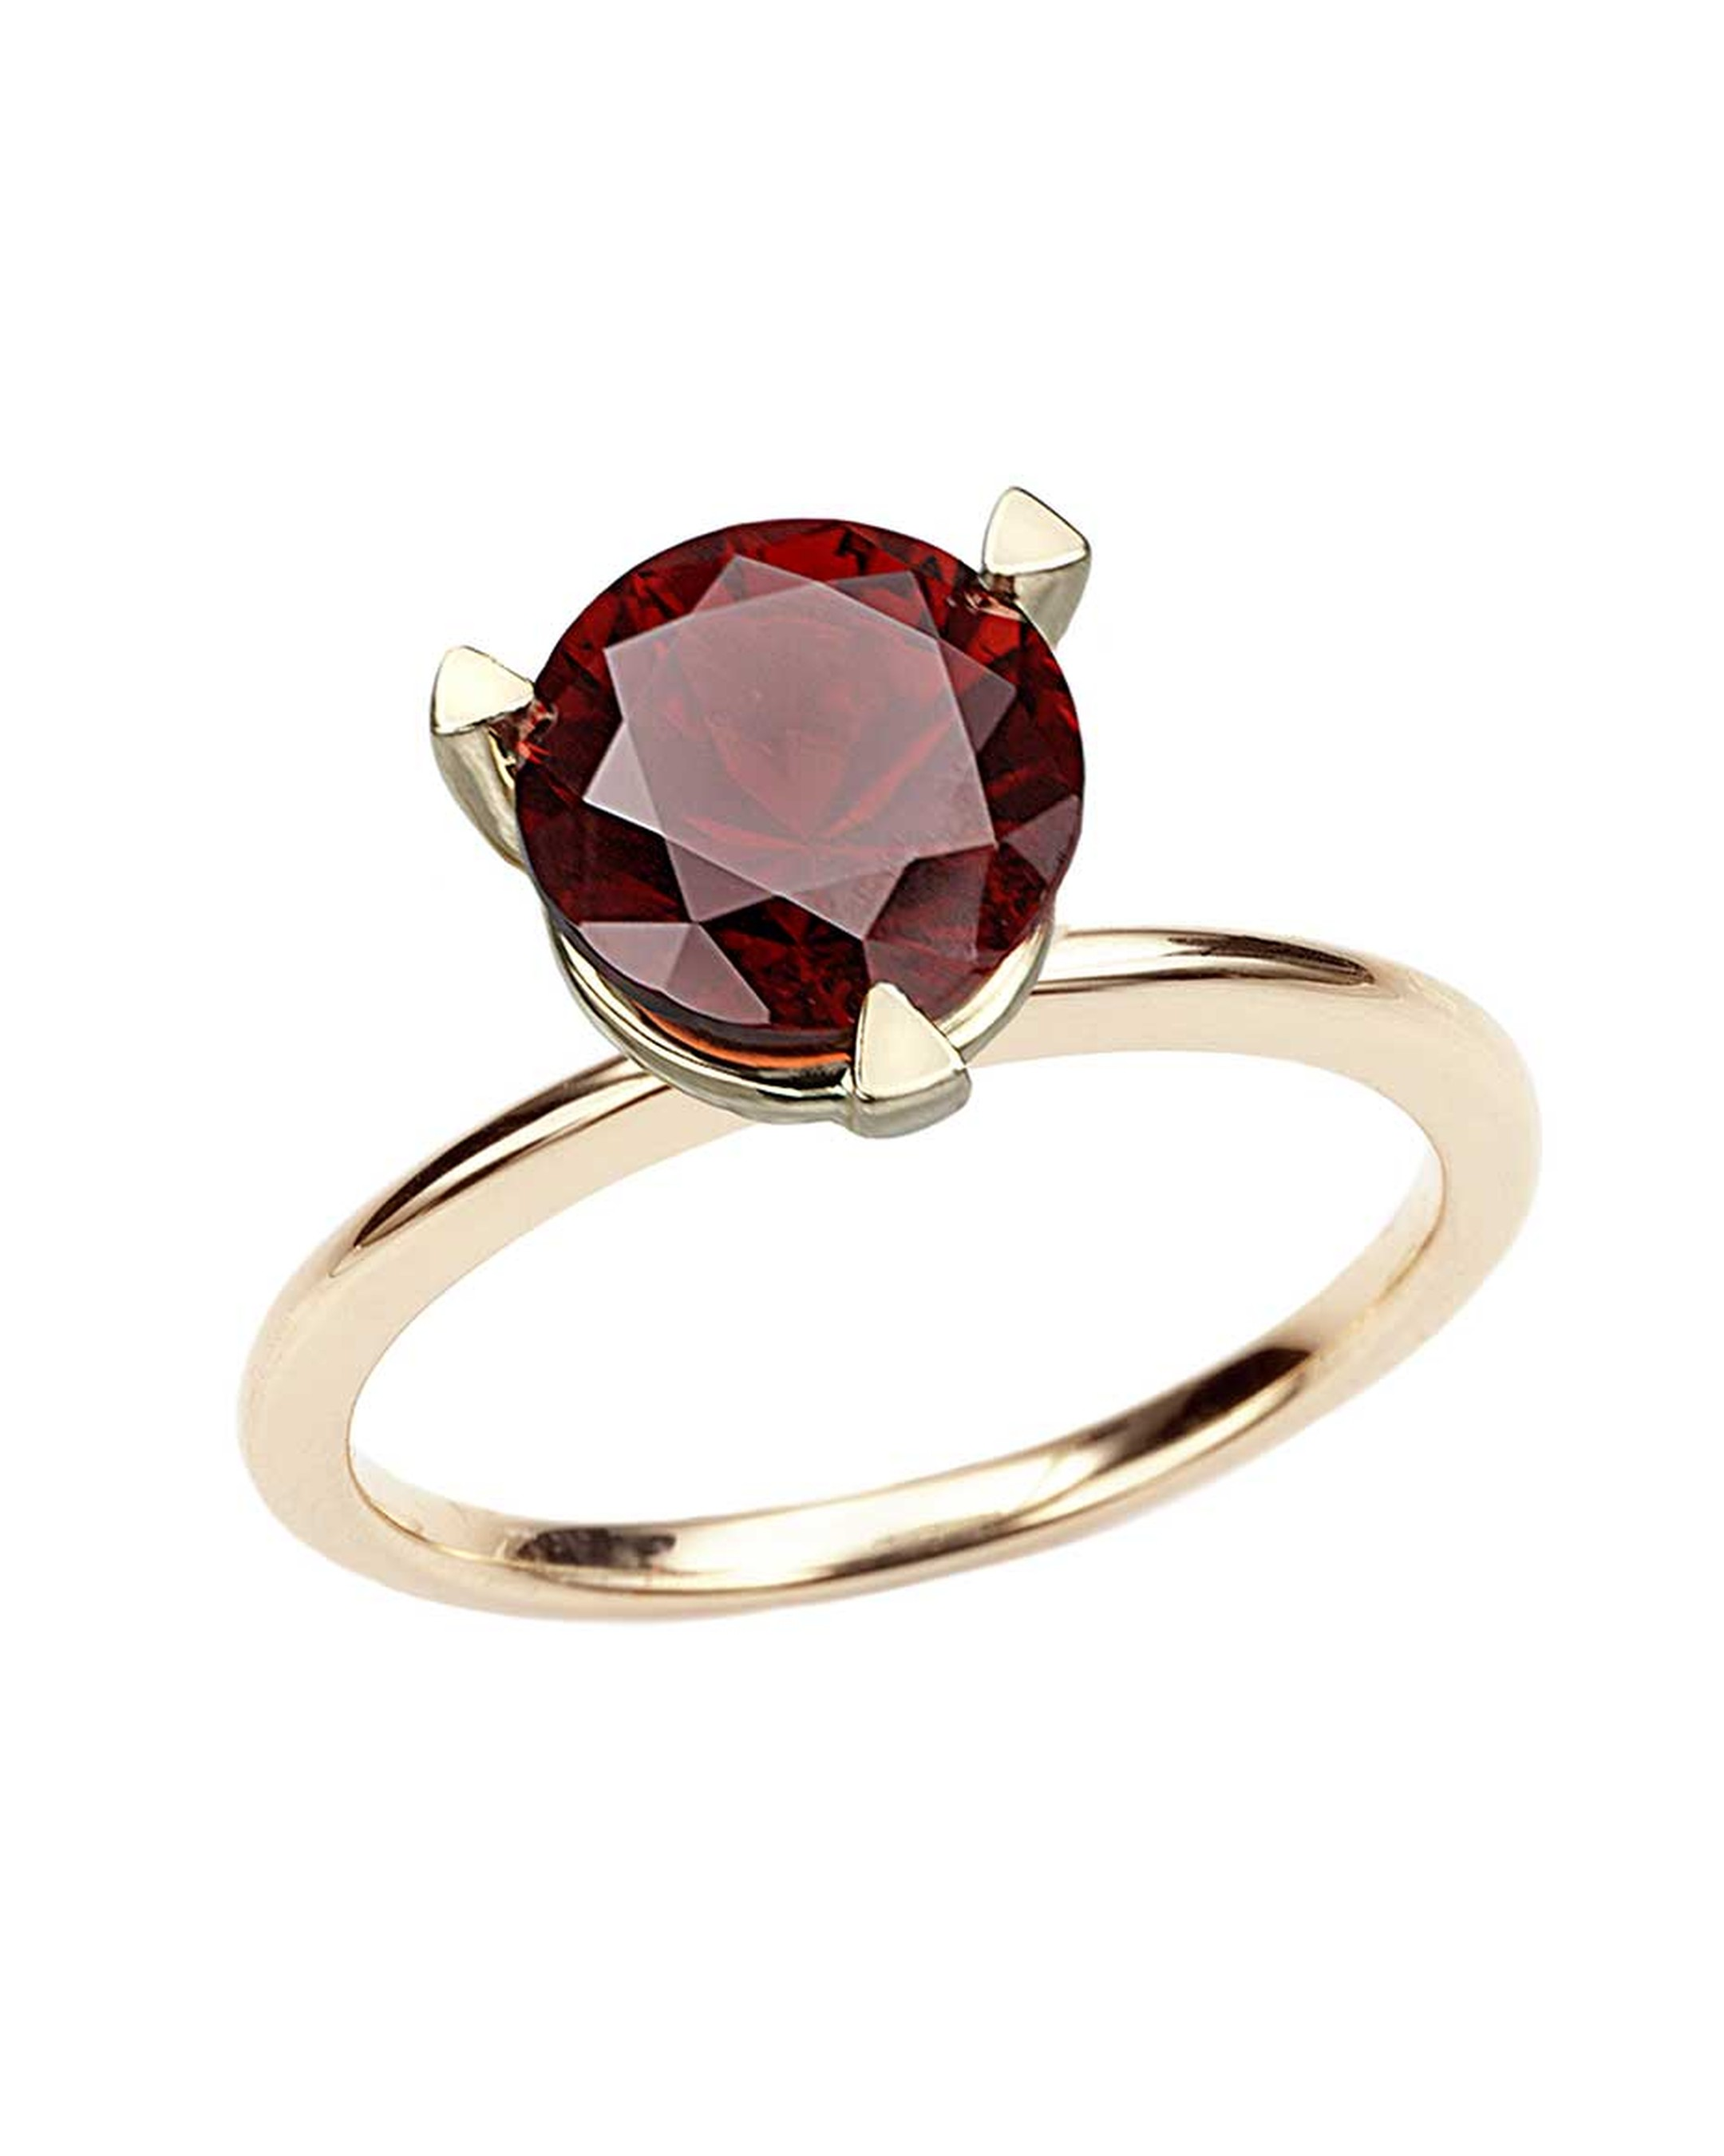 Octium Pop ring in yellow gold, set with a round pyrope garnet.